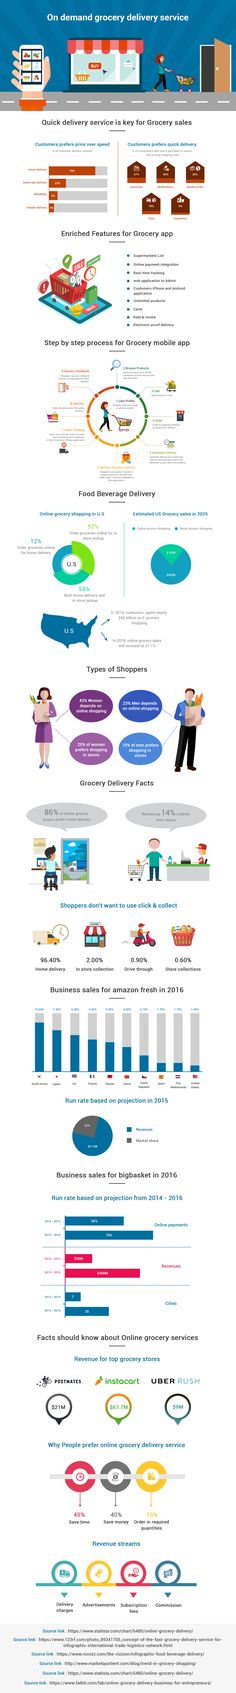 15 Best Online grocery delivery system images in 2018 | Delivery